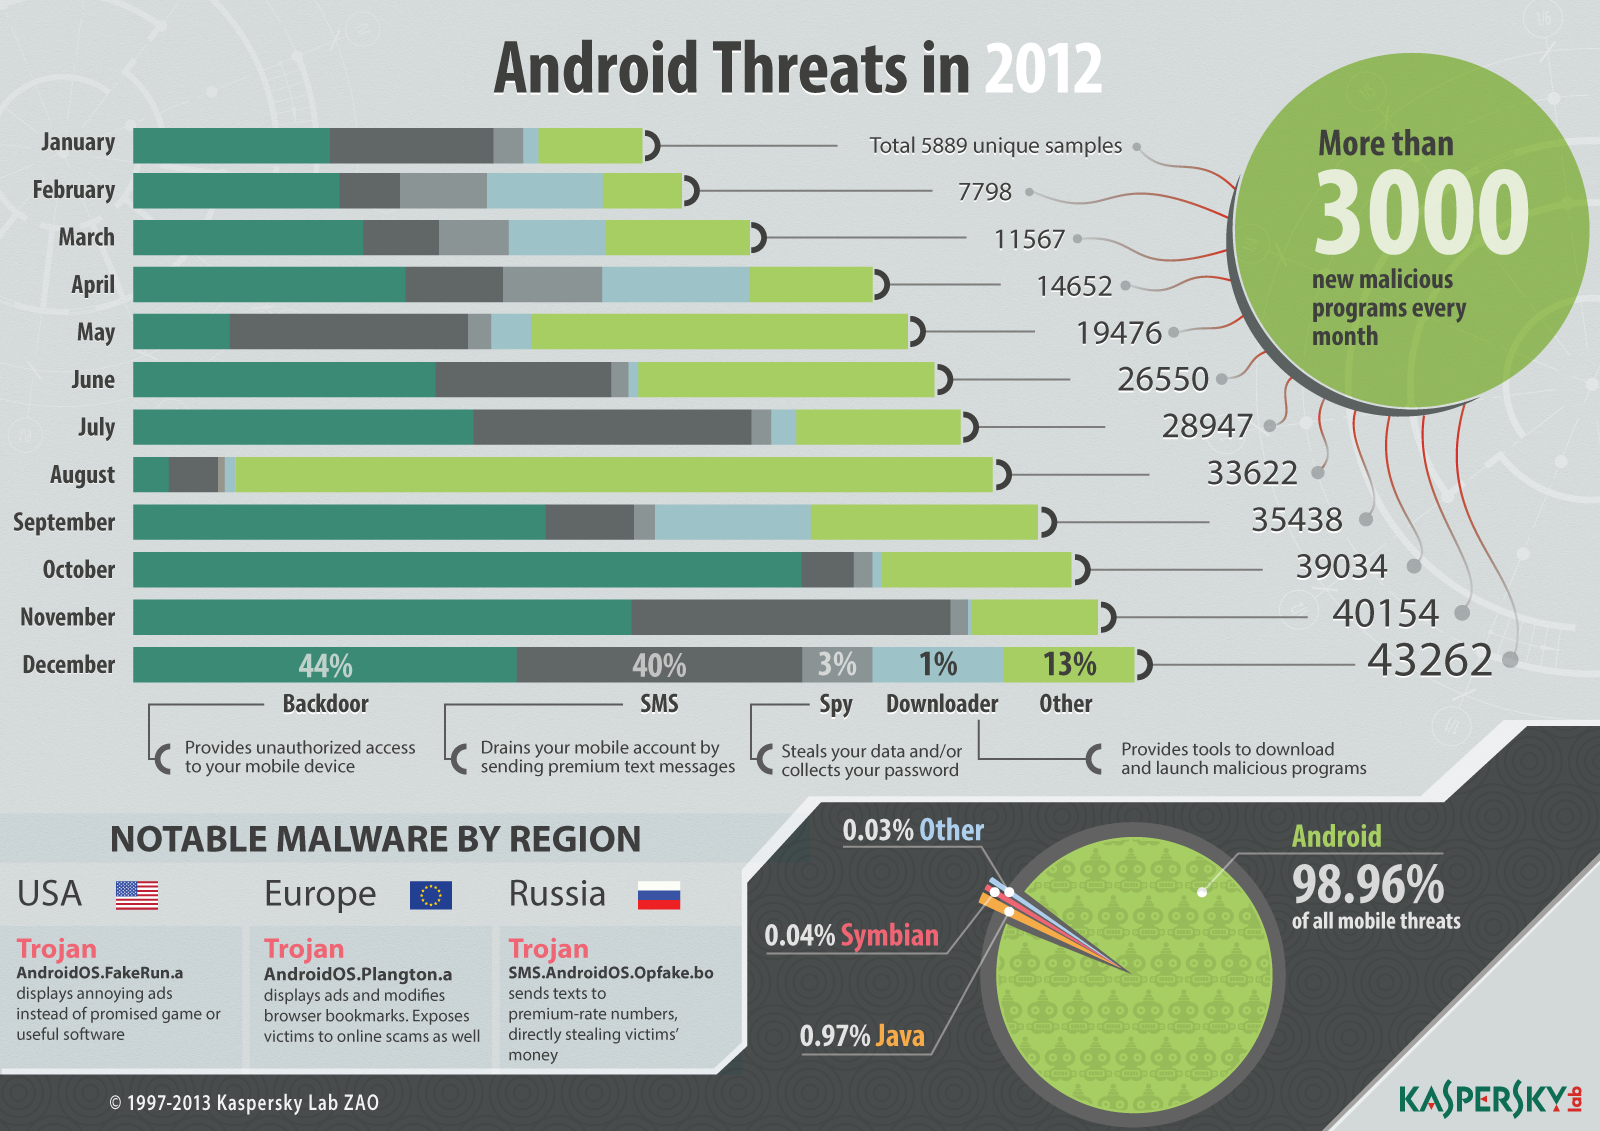 Android Malware Threats 2012 Infographic